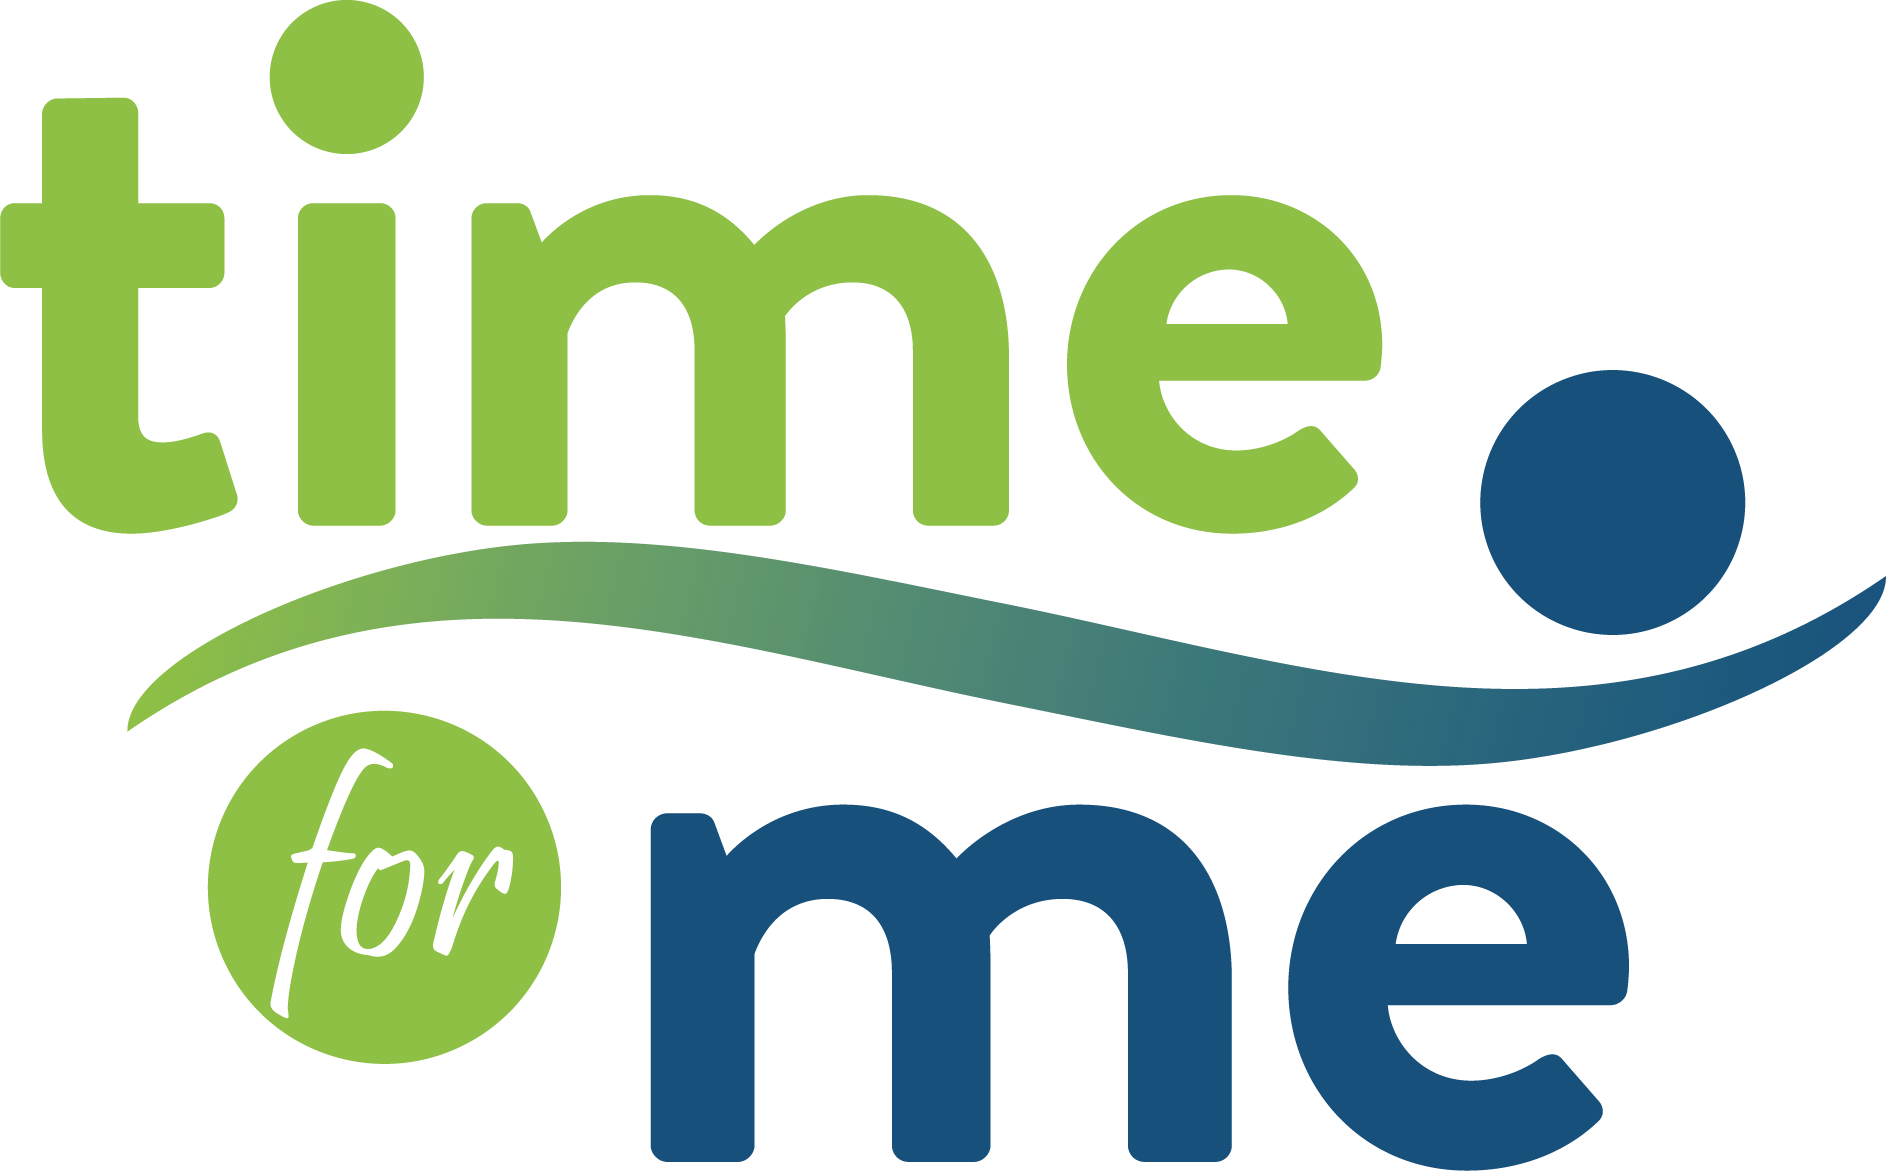 Time for Me logo